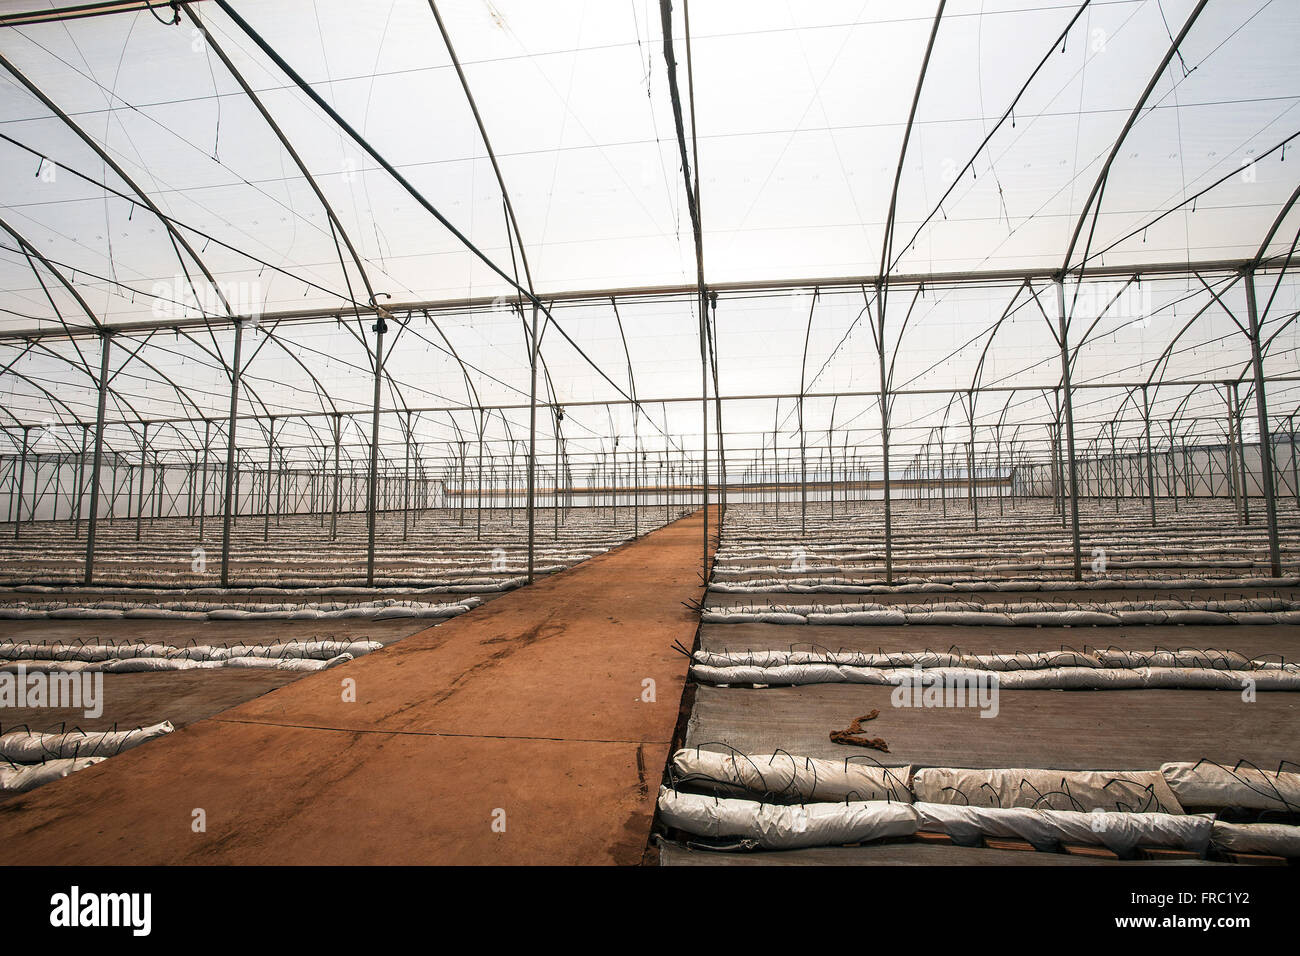 High-tech greenhouse to receive organic planting tomatoes in the countryside - Stock Image